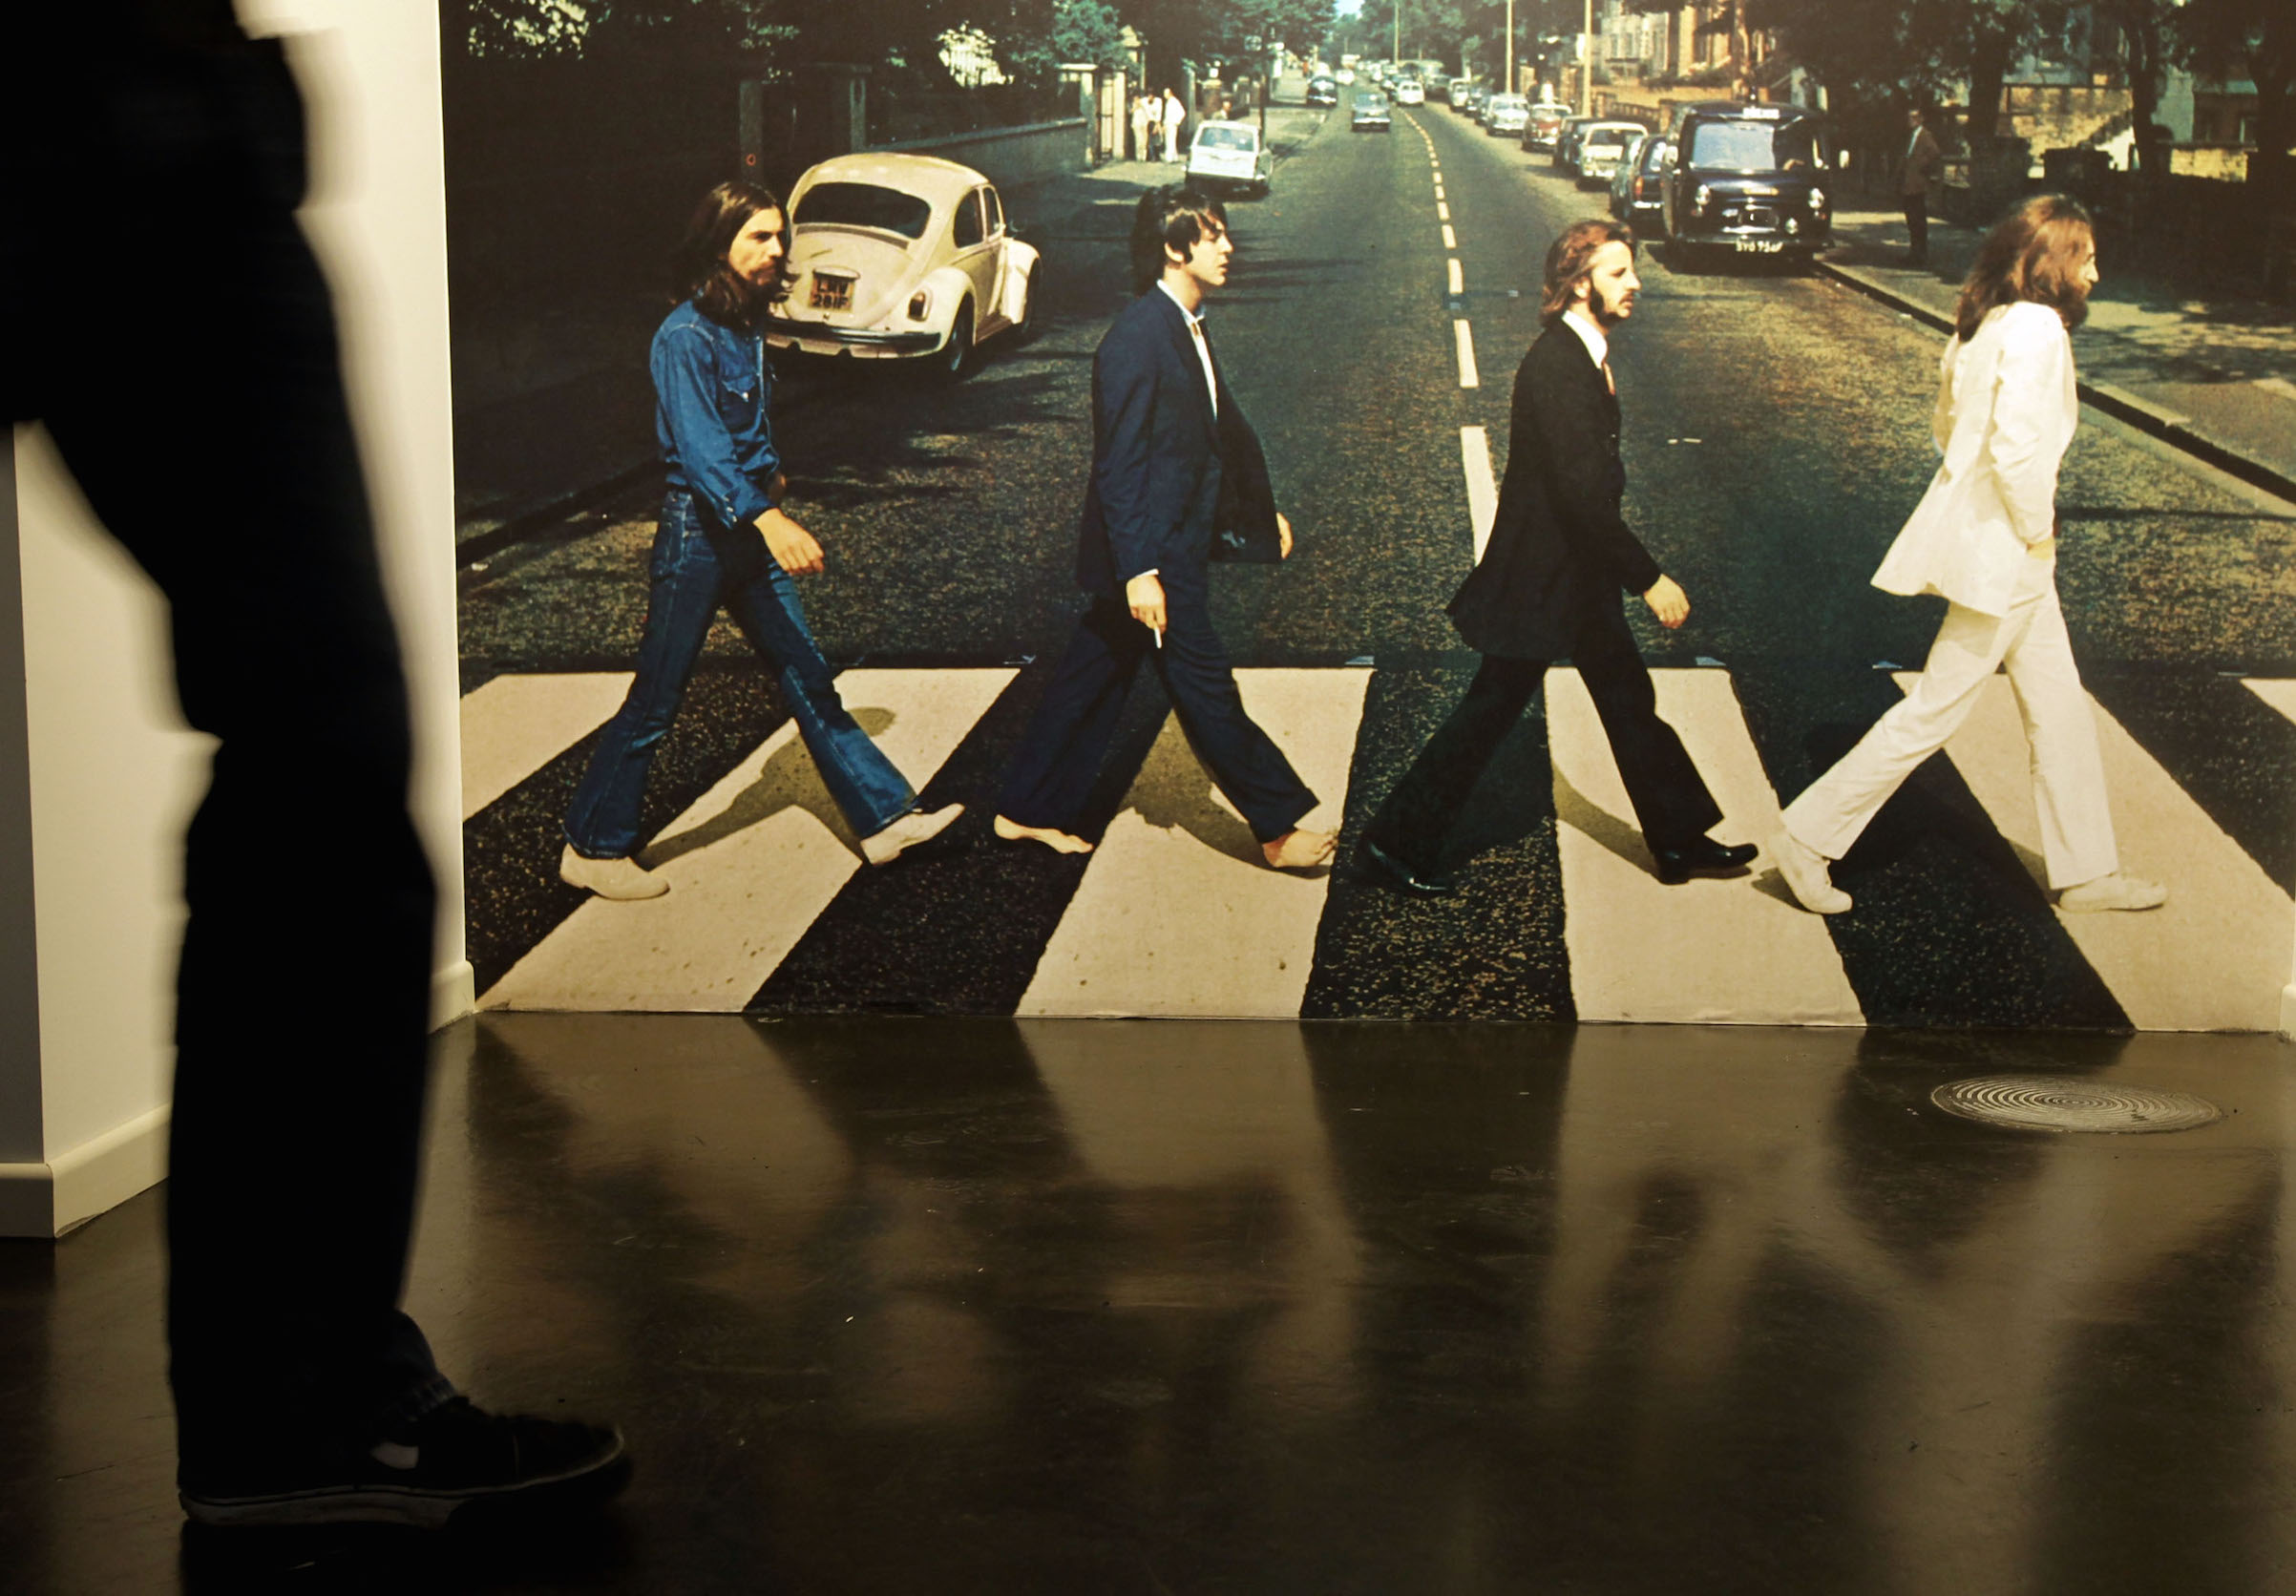 The 'Abbey Road Studio' room is seen at the Beatlemania exhibition on May 28, 2009 in Hamburg, Germany